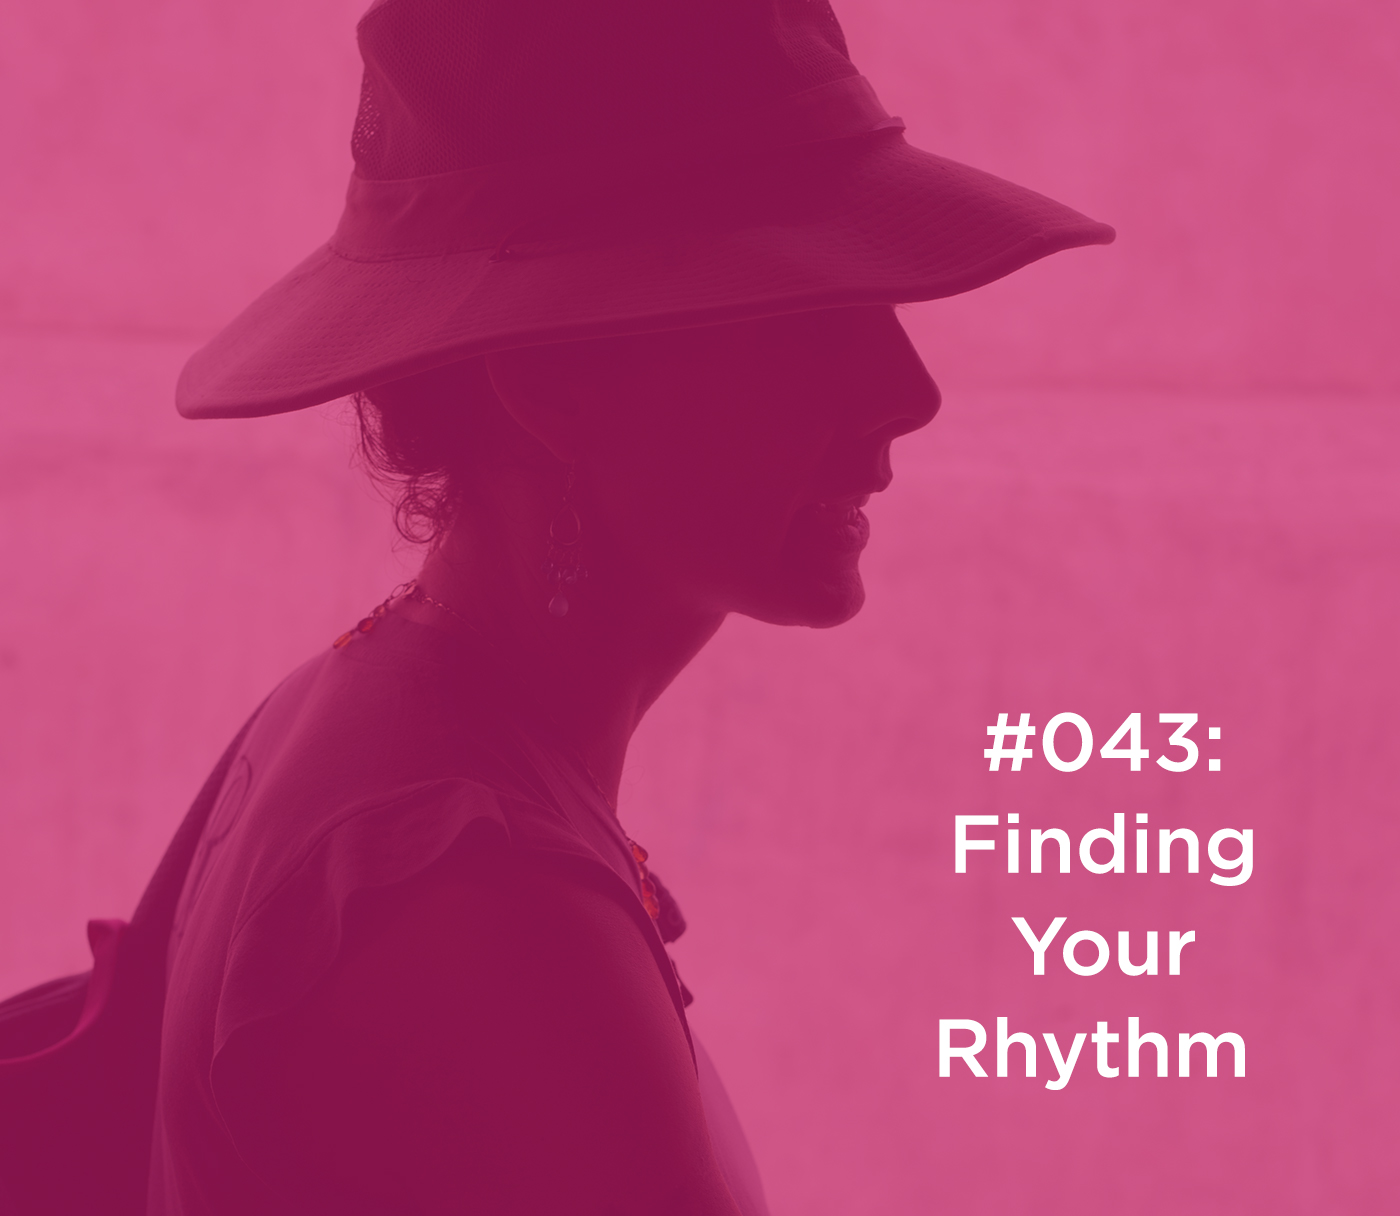 043 Finding Your Rhythm